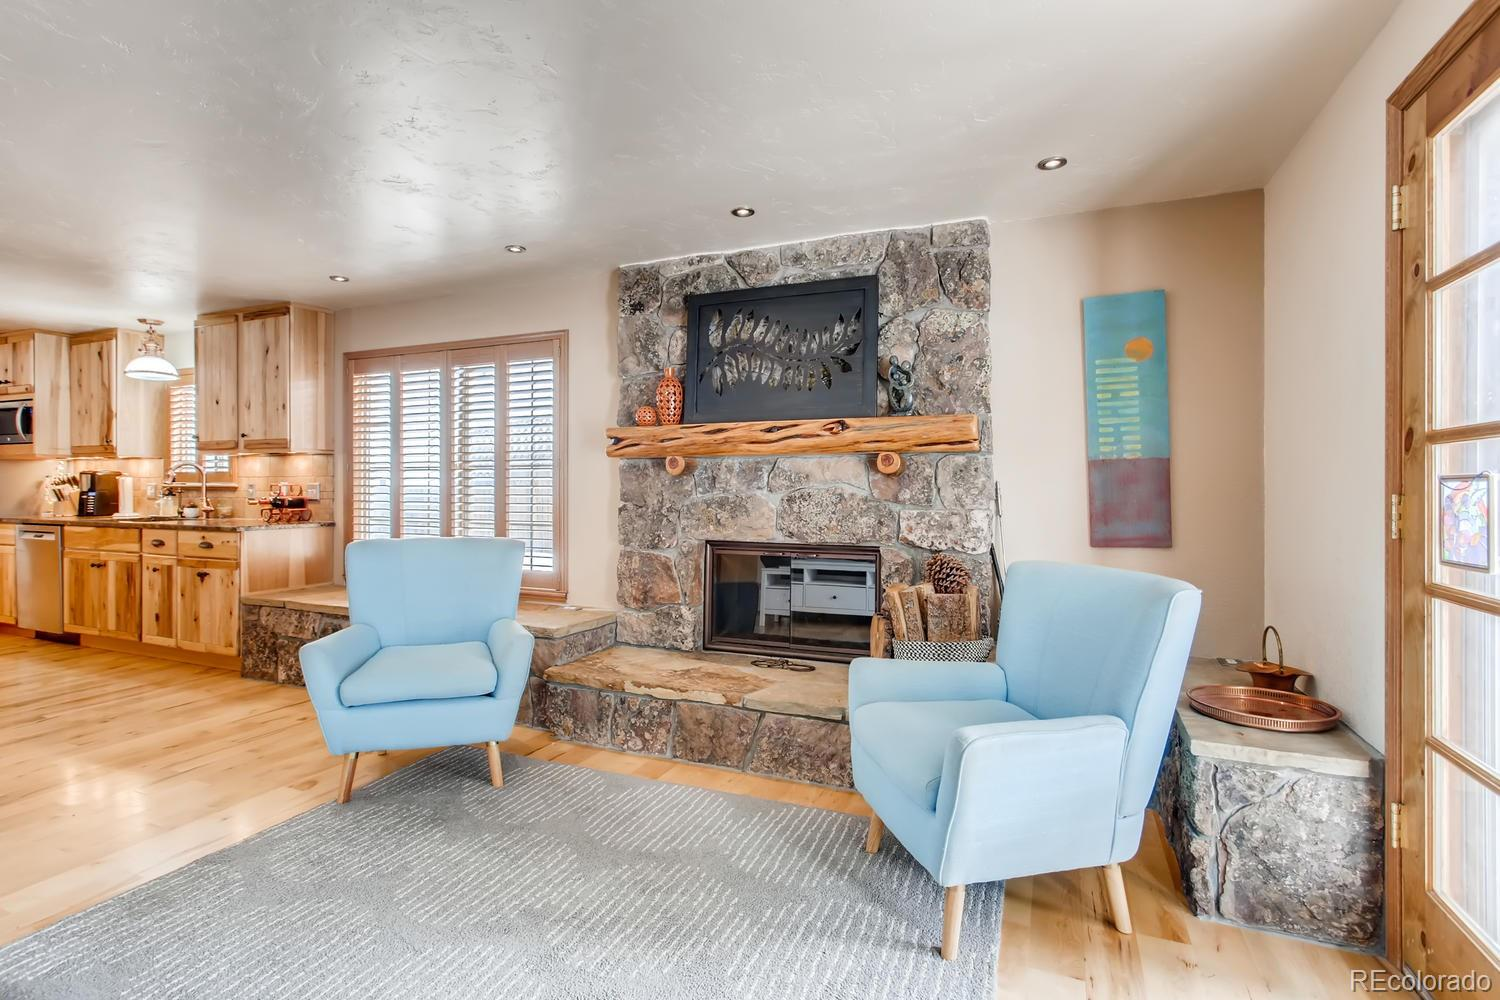 MLS# 4853831 - 2 - 13905 W 6th Place, Golden, CO 80401